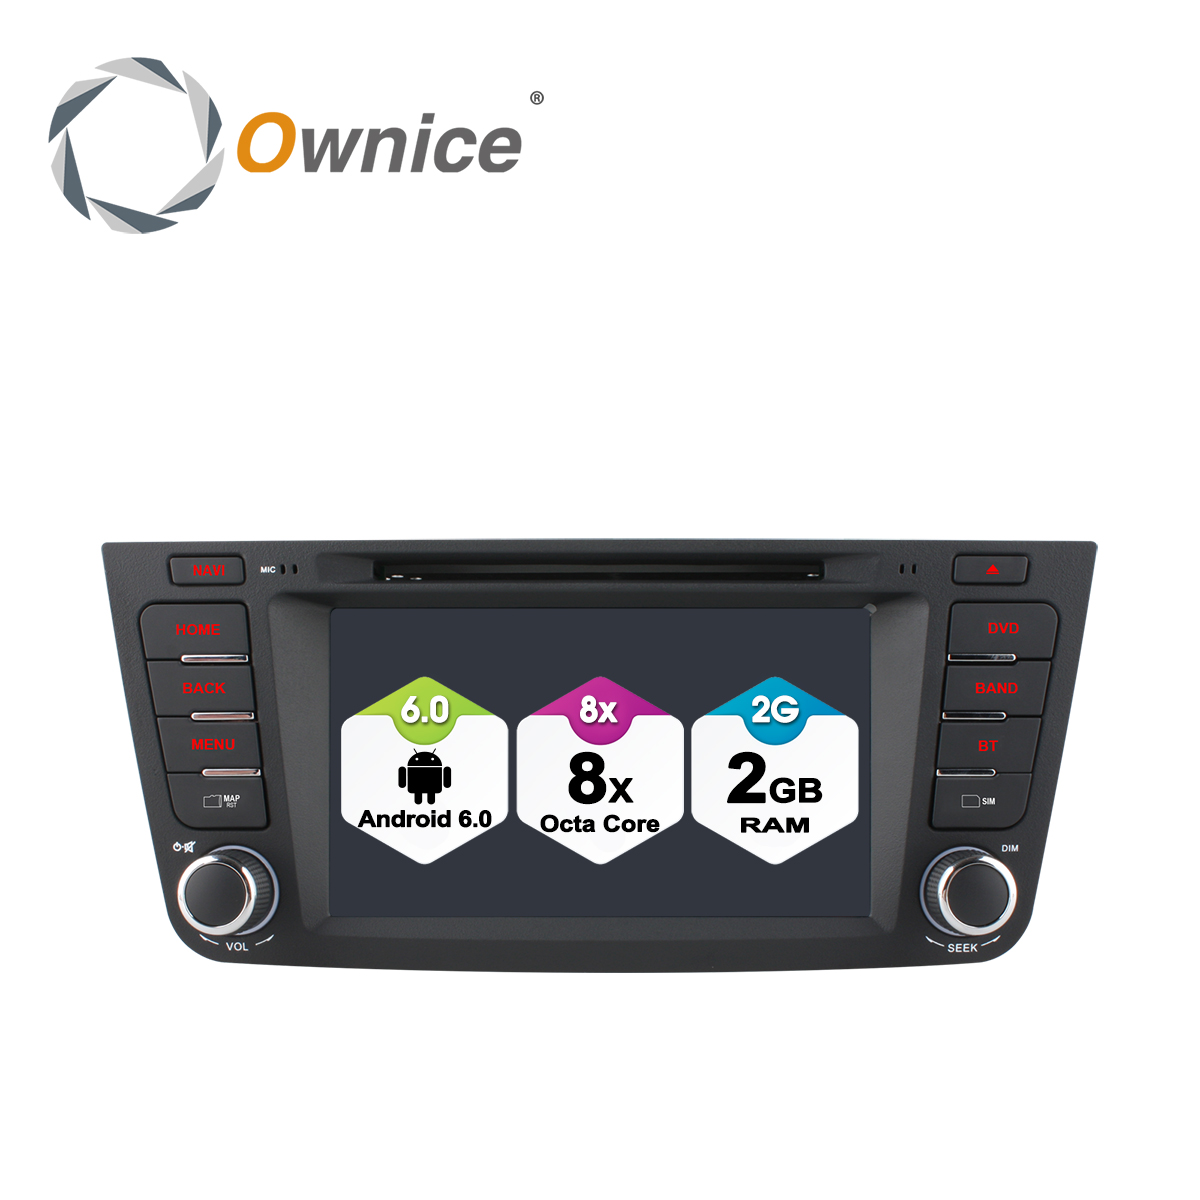 Ownice C500 Octa 8 Core Android 6.0 2 DIN Car DVD player For Geely Emgrand X7 EX7 GX7 with 1024*600 2GB RAM 32GB ROM support 4G интерактивная игруша my little pony поющая твайлайт спаркл и спайк